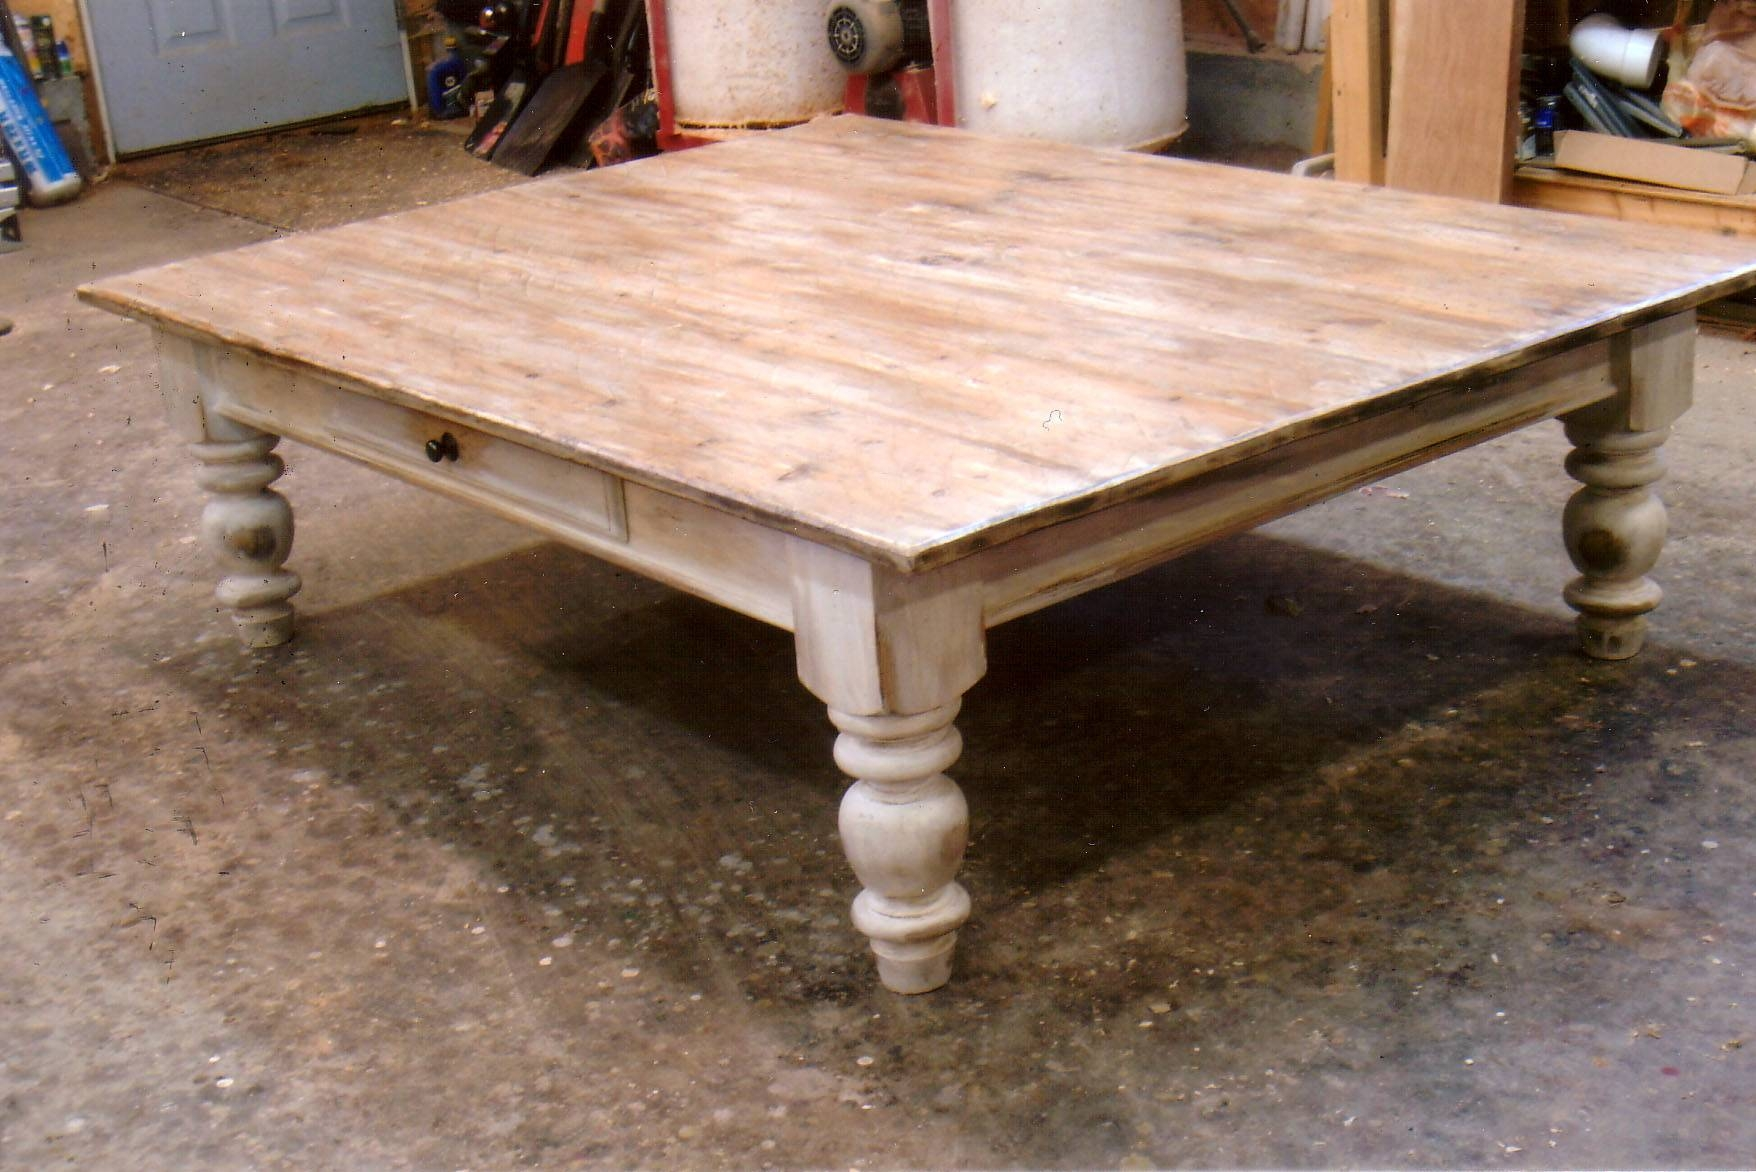 Large Rustic Coffee Table – Rustic Coffee Tables On Pinterest within Large Rustic Coffee Tables (Image 7 of 15)